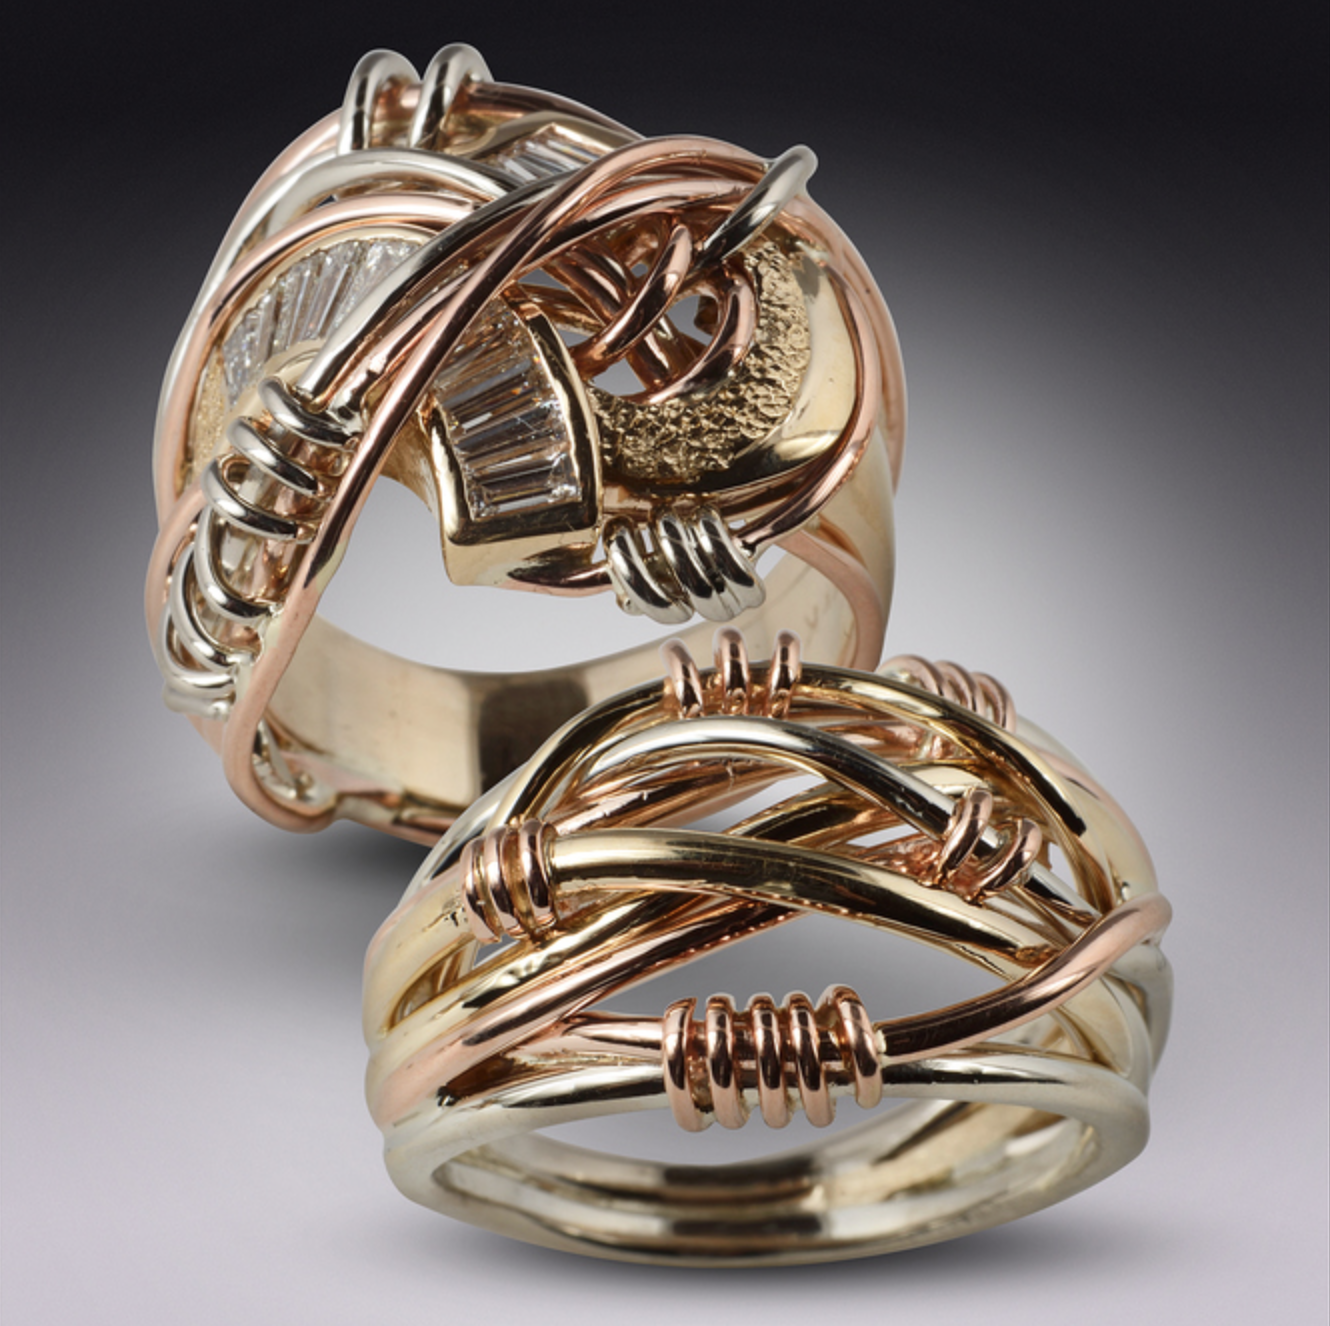 Jewelry- Mark Grosser